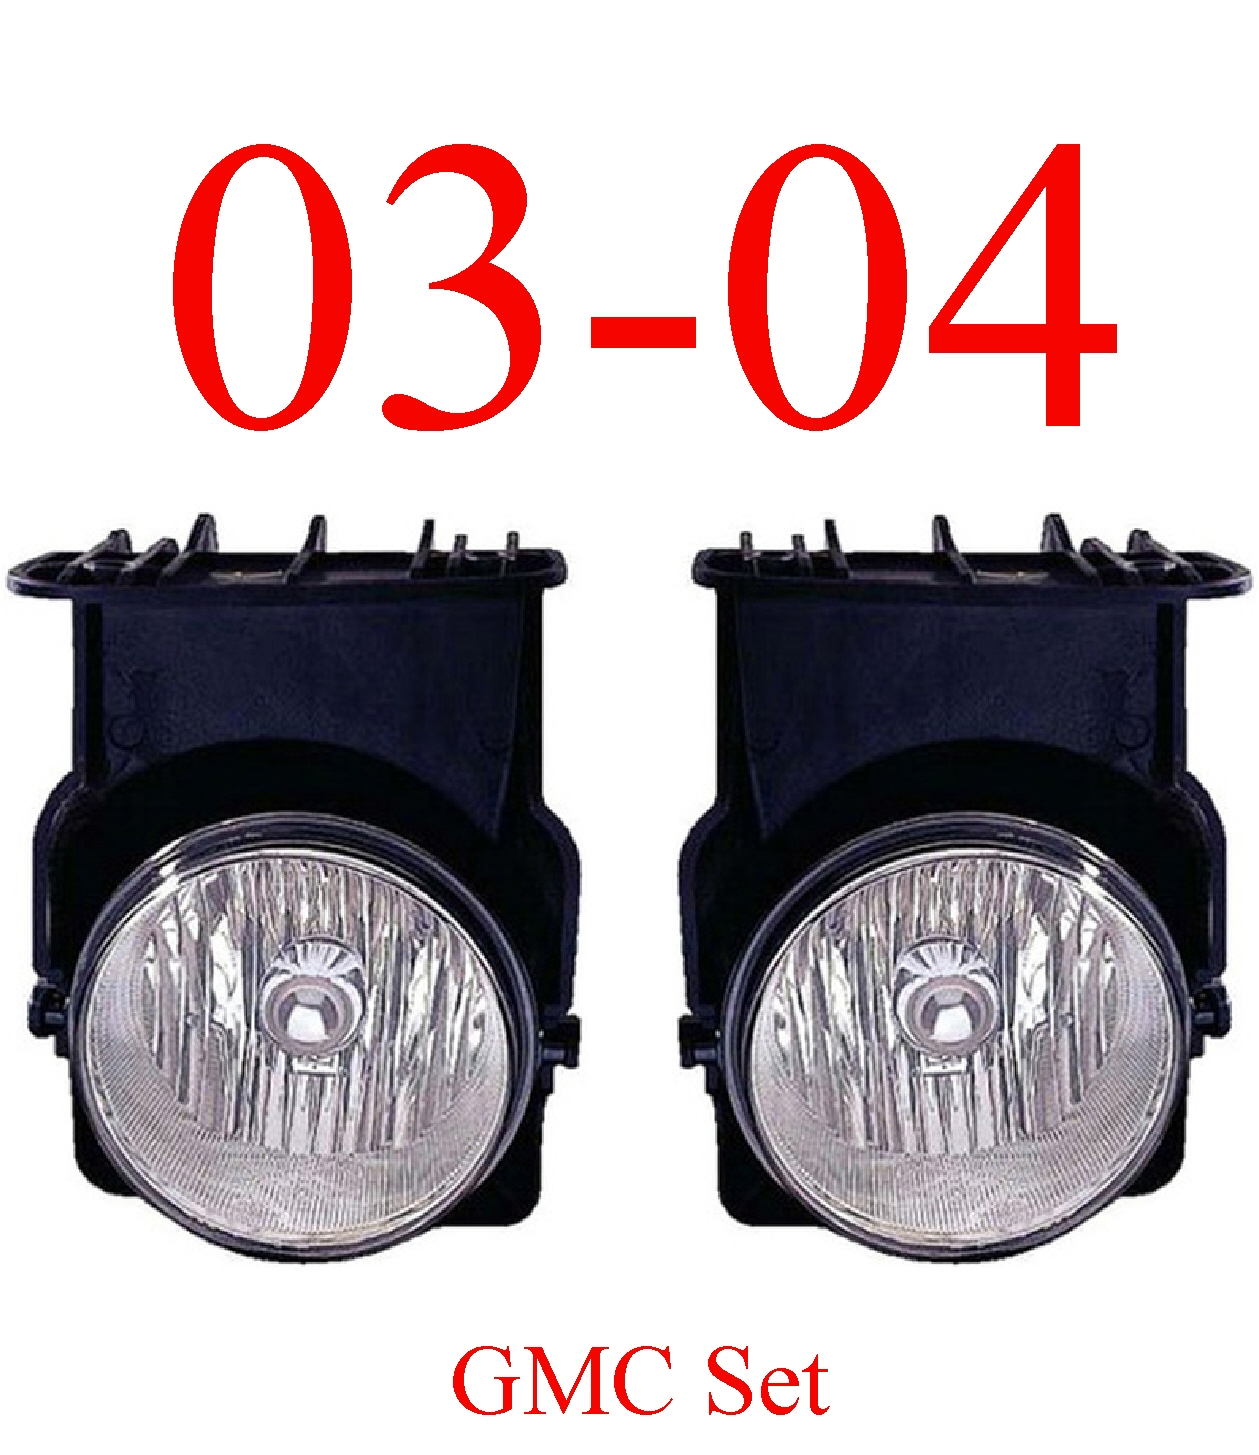 03-04 GMC Truck Fog Light Set